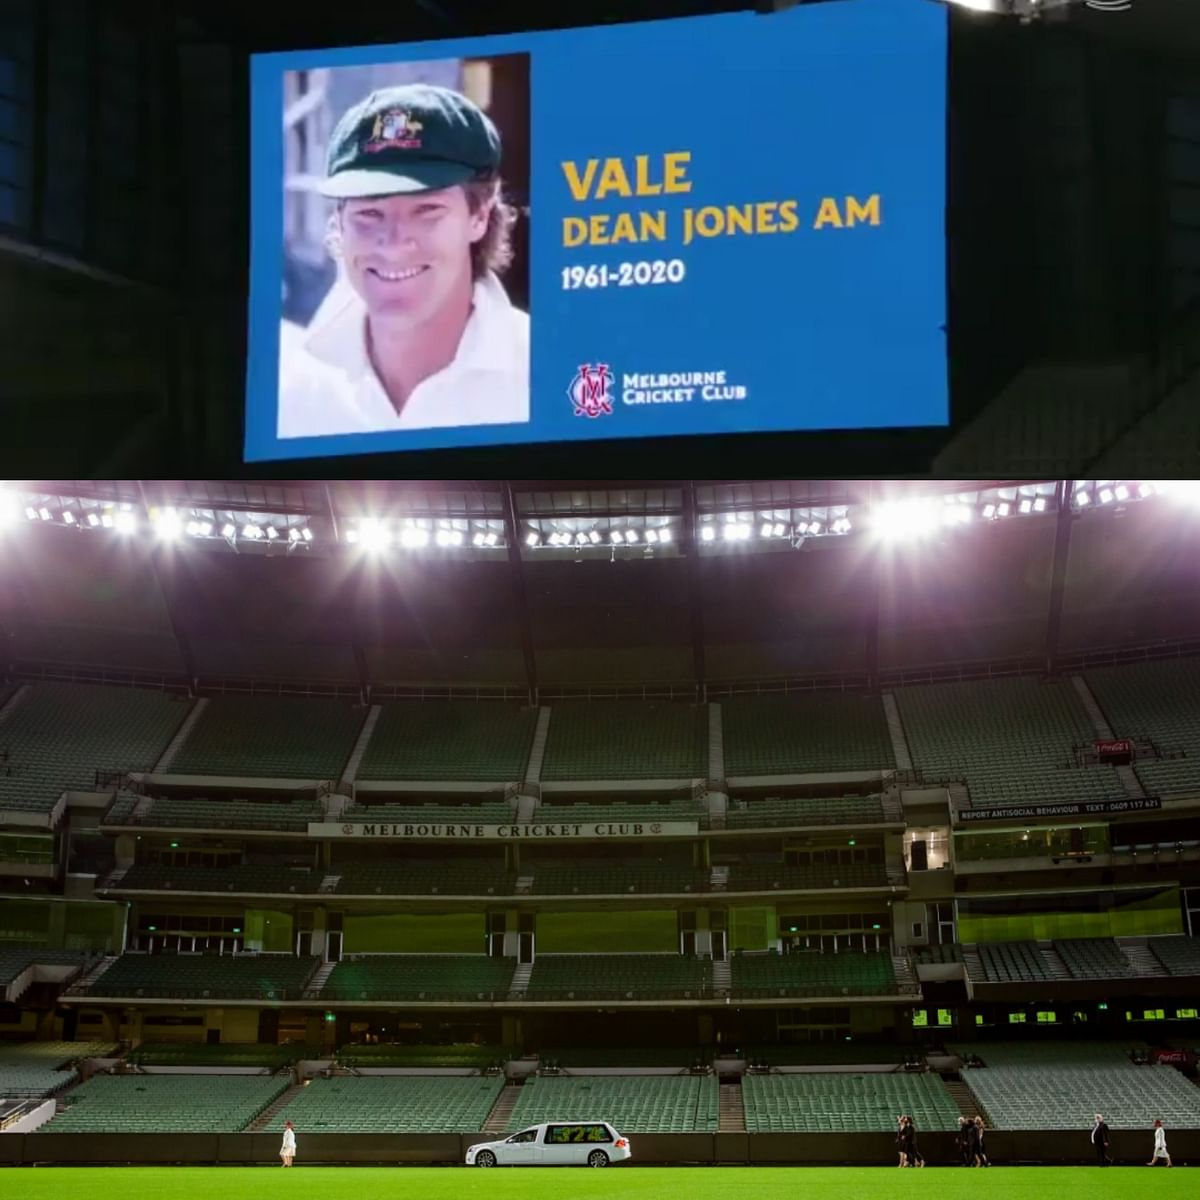 Dean Jones' Final Lap at the MCG